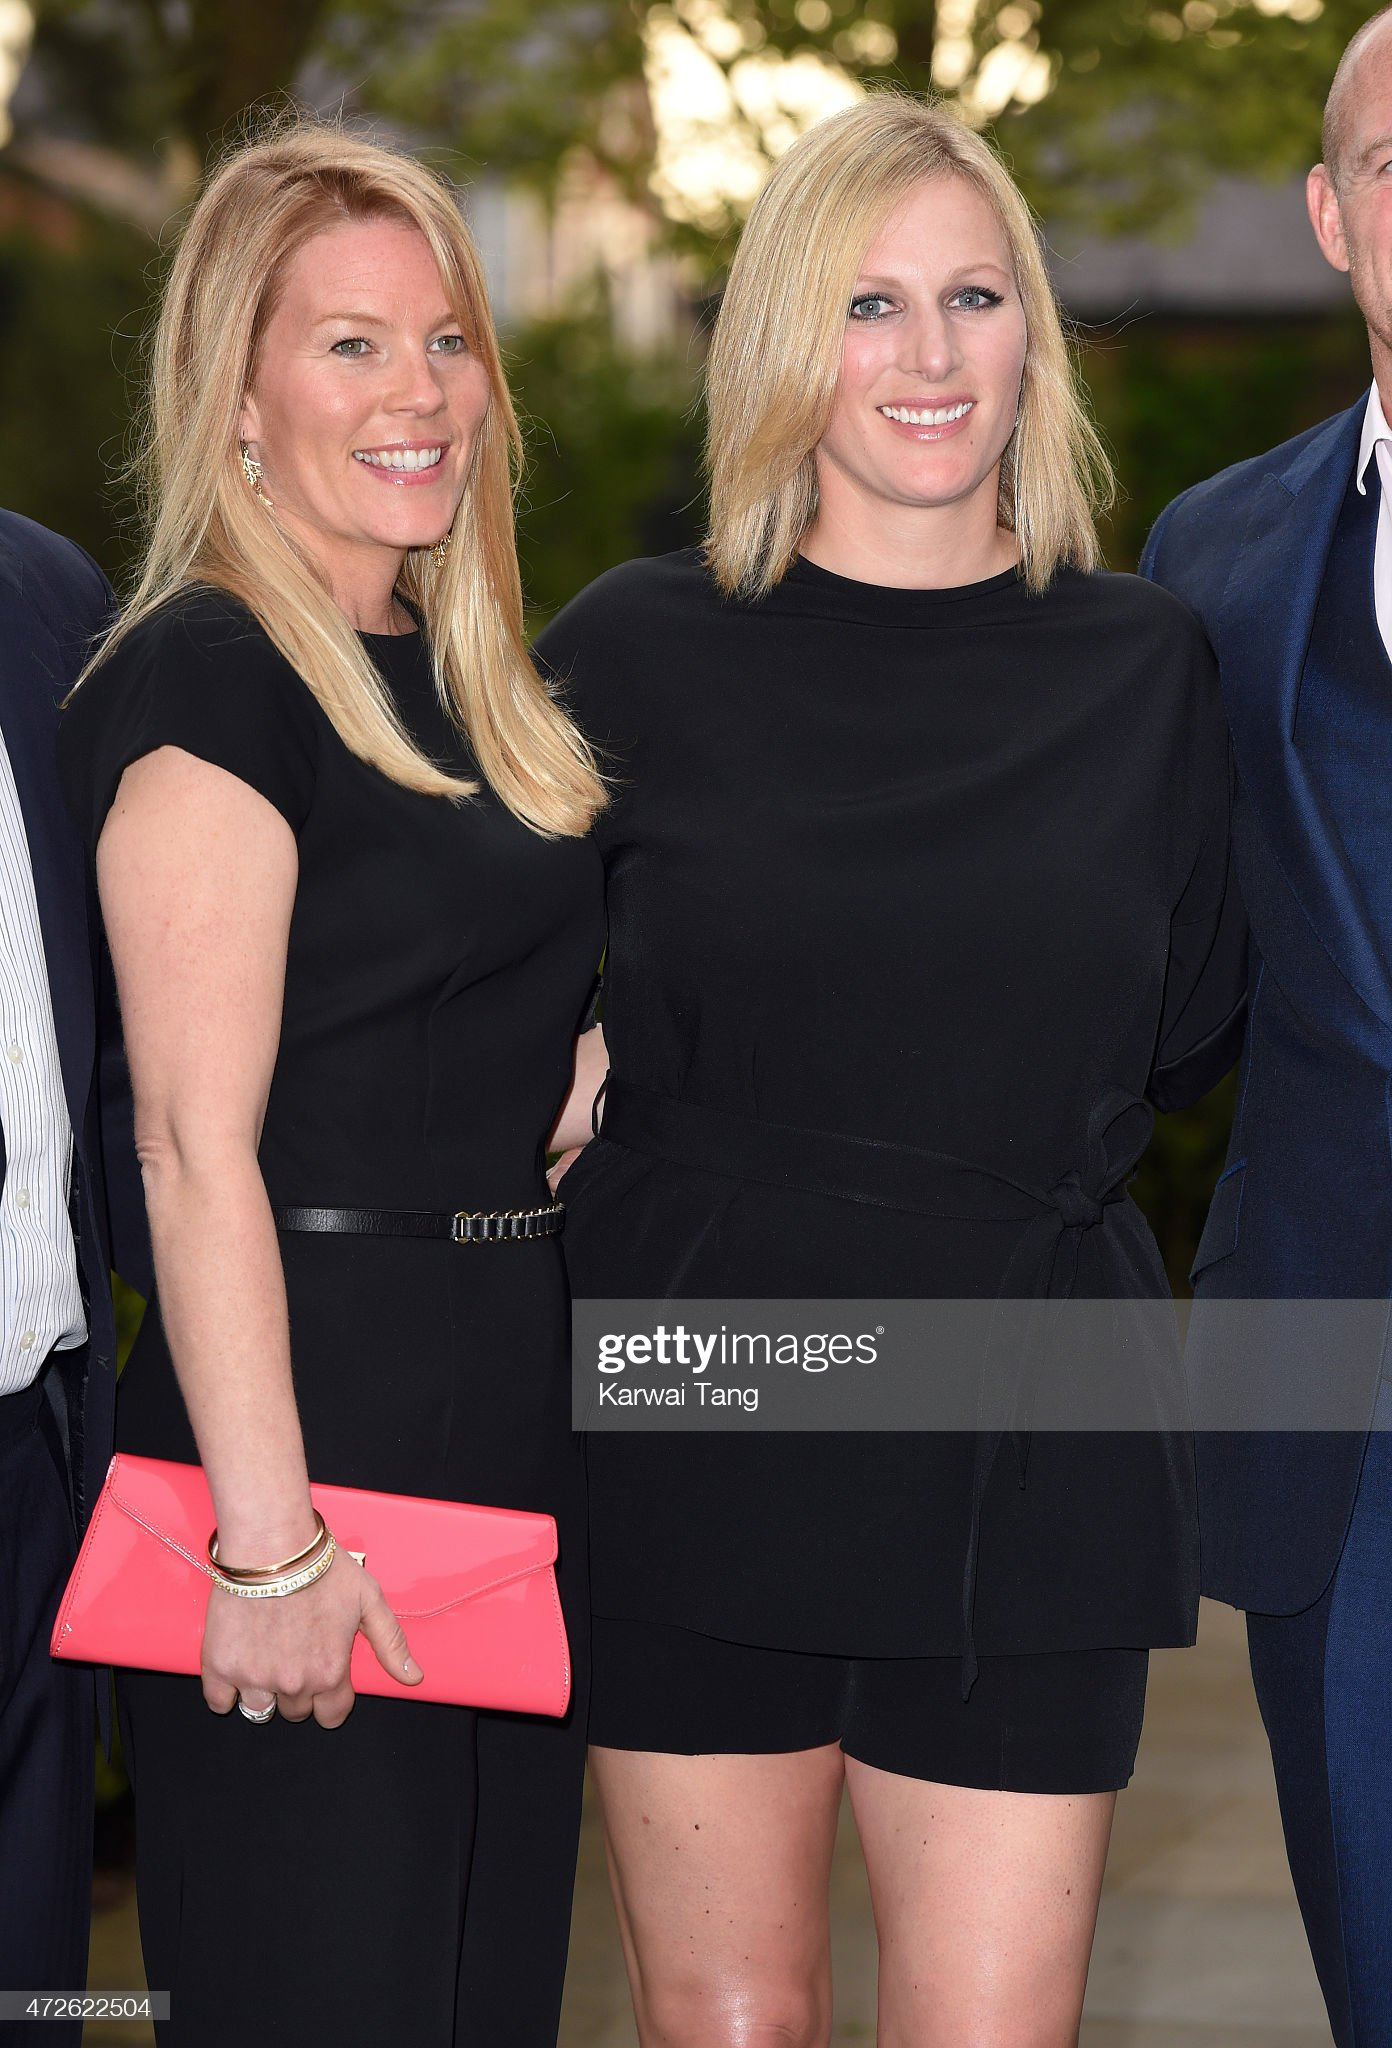 ISPS Handa Mike Tindall 3rd Annual Celebrity Golf Classic - Evening Reception : News Photo